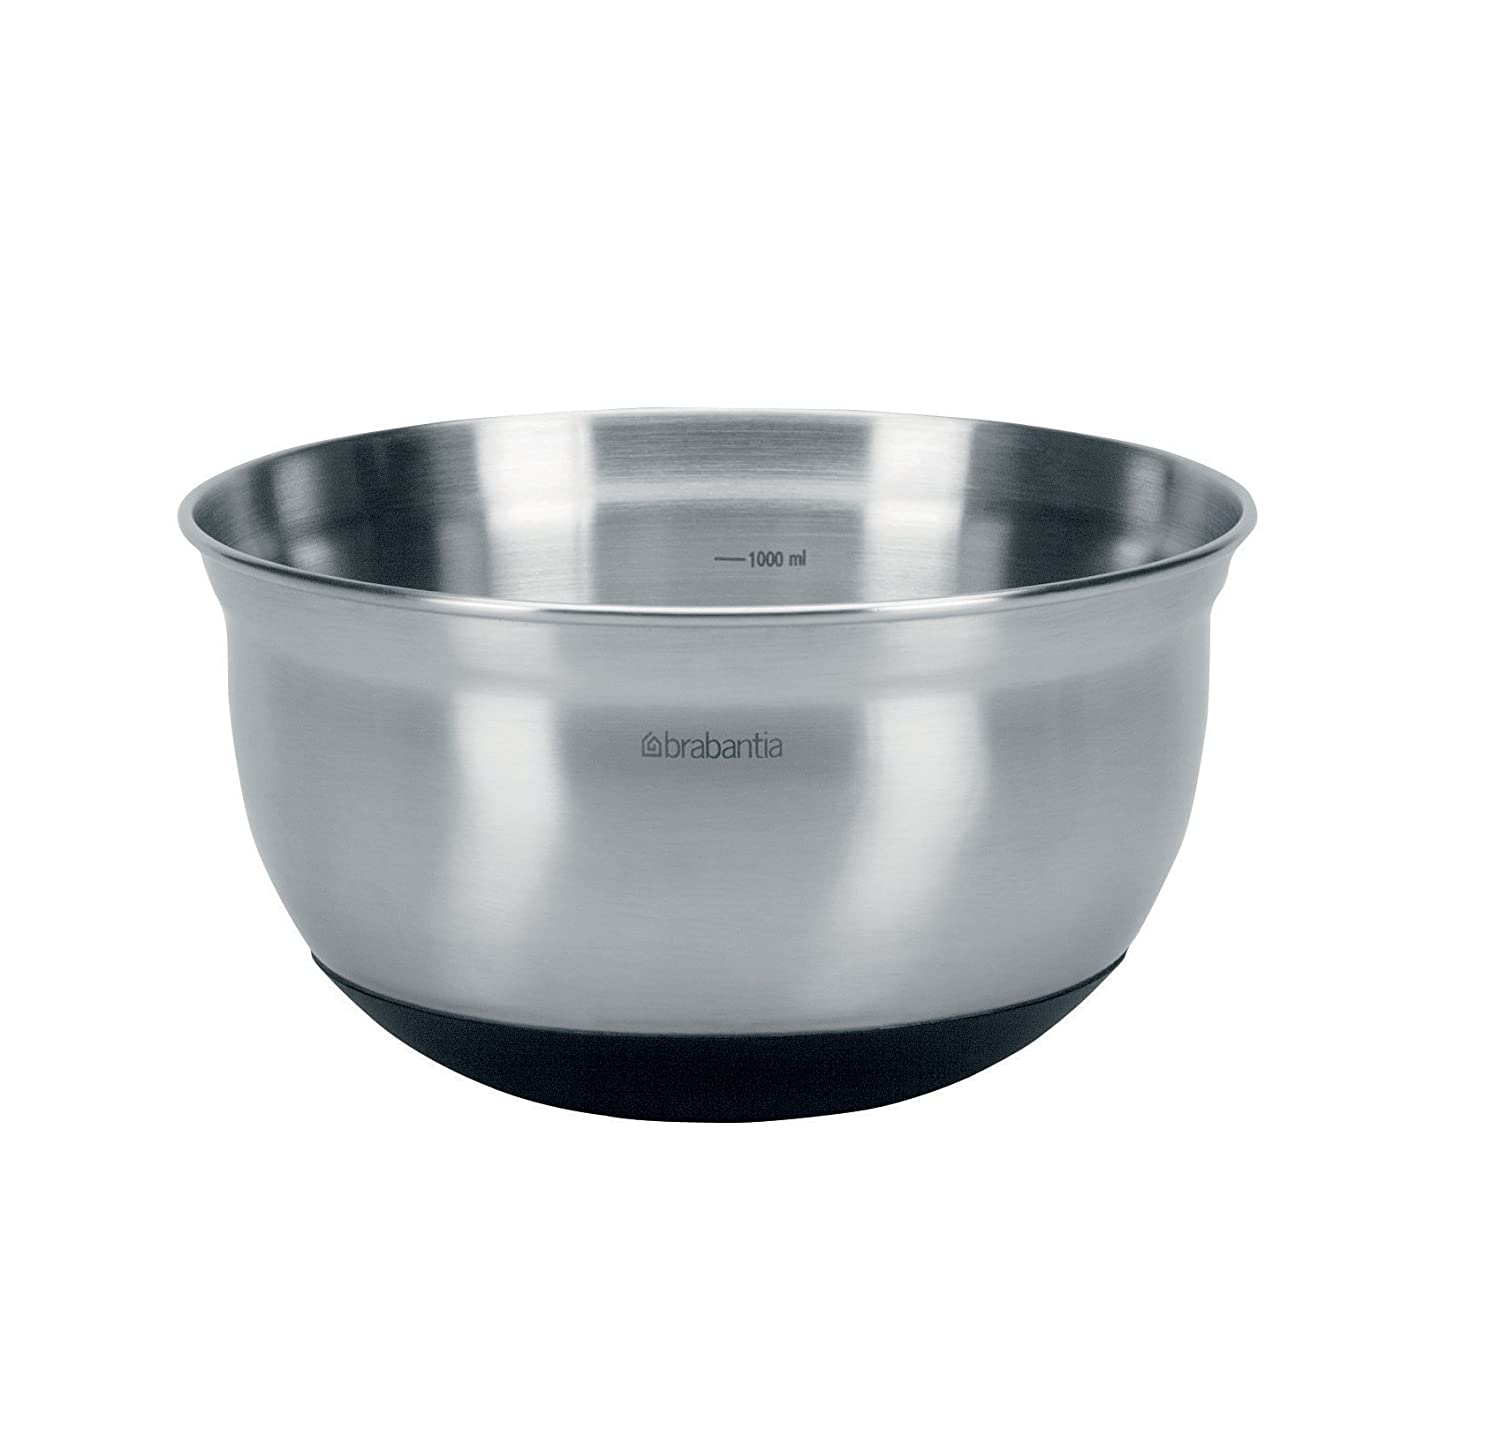 Brabantia Mixing Bowl, 1 L - Matt Steel 363825 363825_MattSteel-1l Brabantia Mixing Bowl 1litre Kitchen Accessories